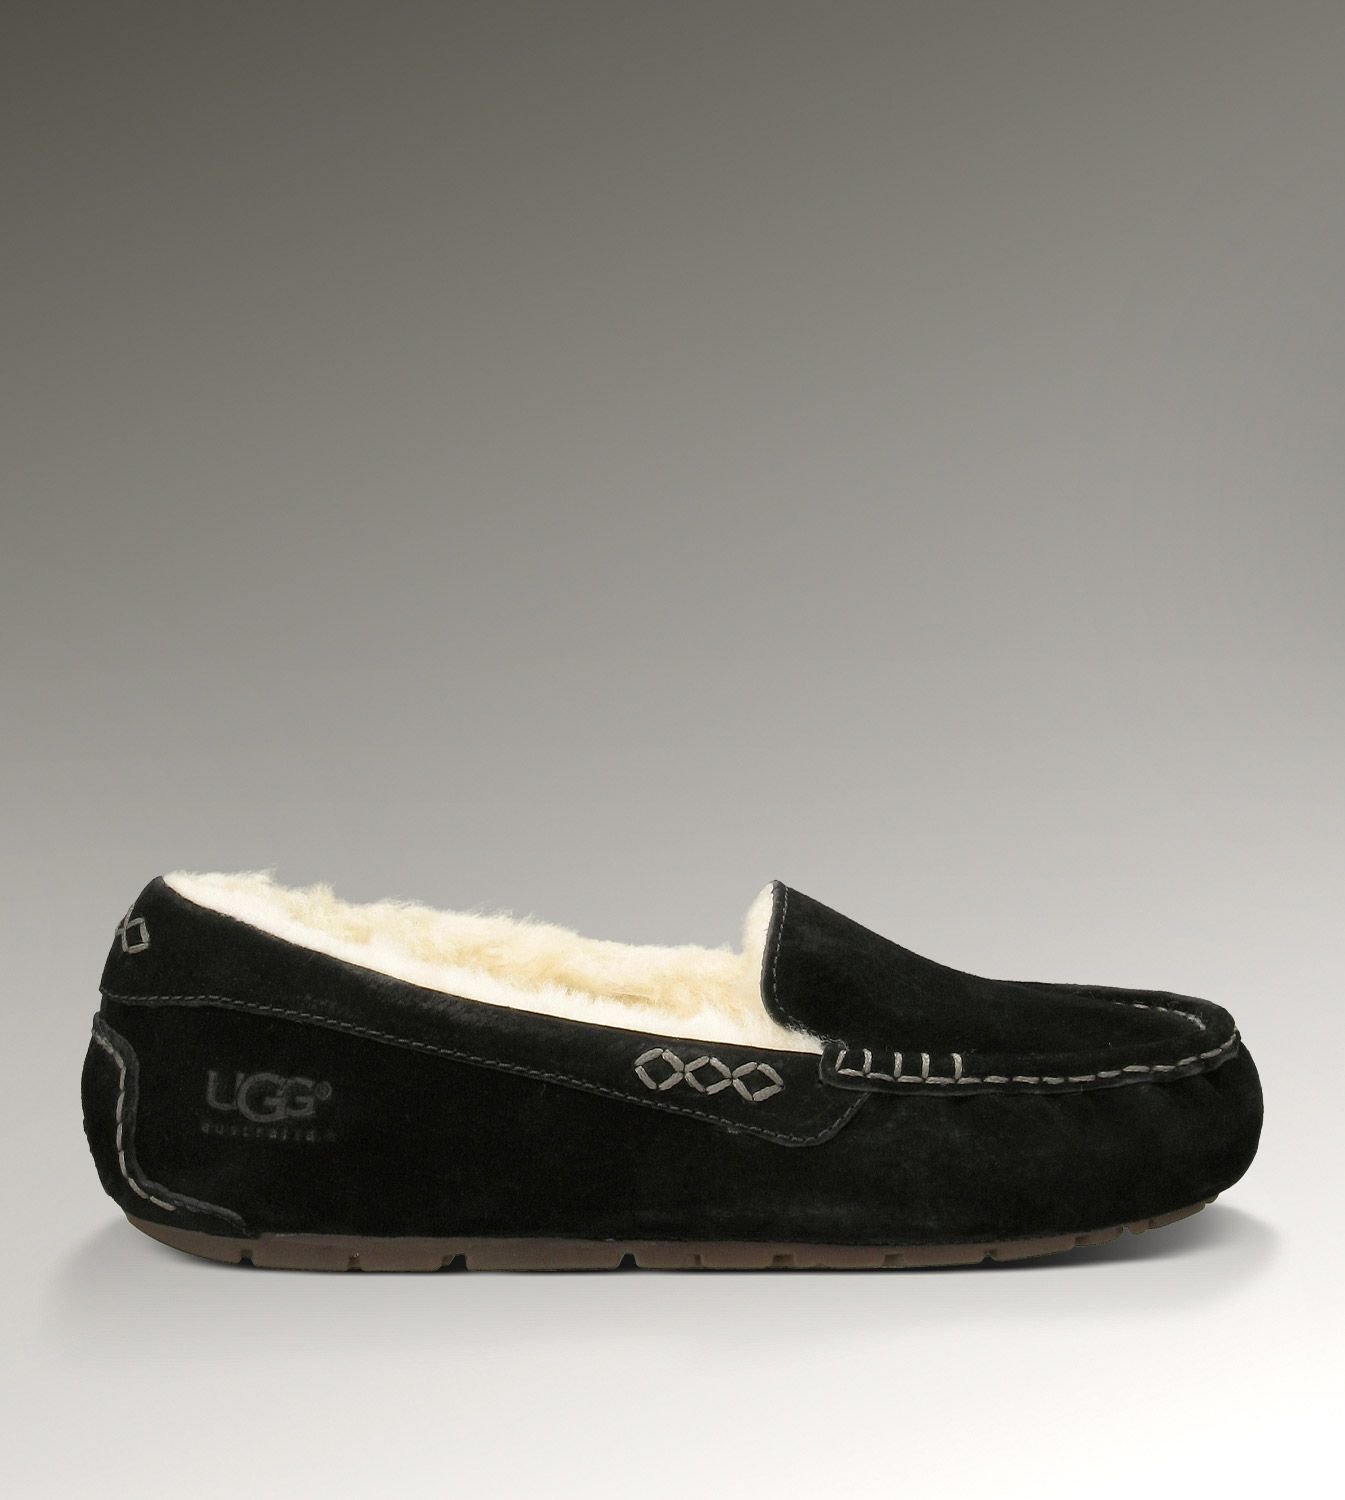 ugg ansley 3312 black slippers ugg slippers pinterest uggs rh pinterest co uk